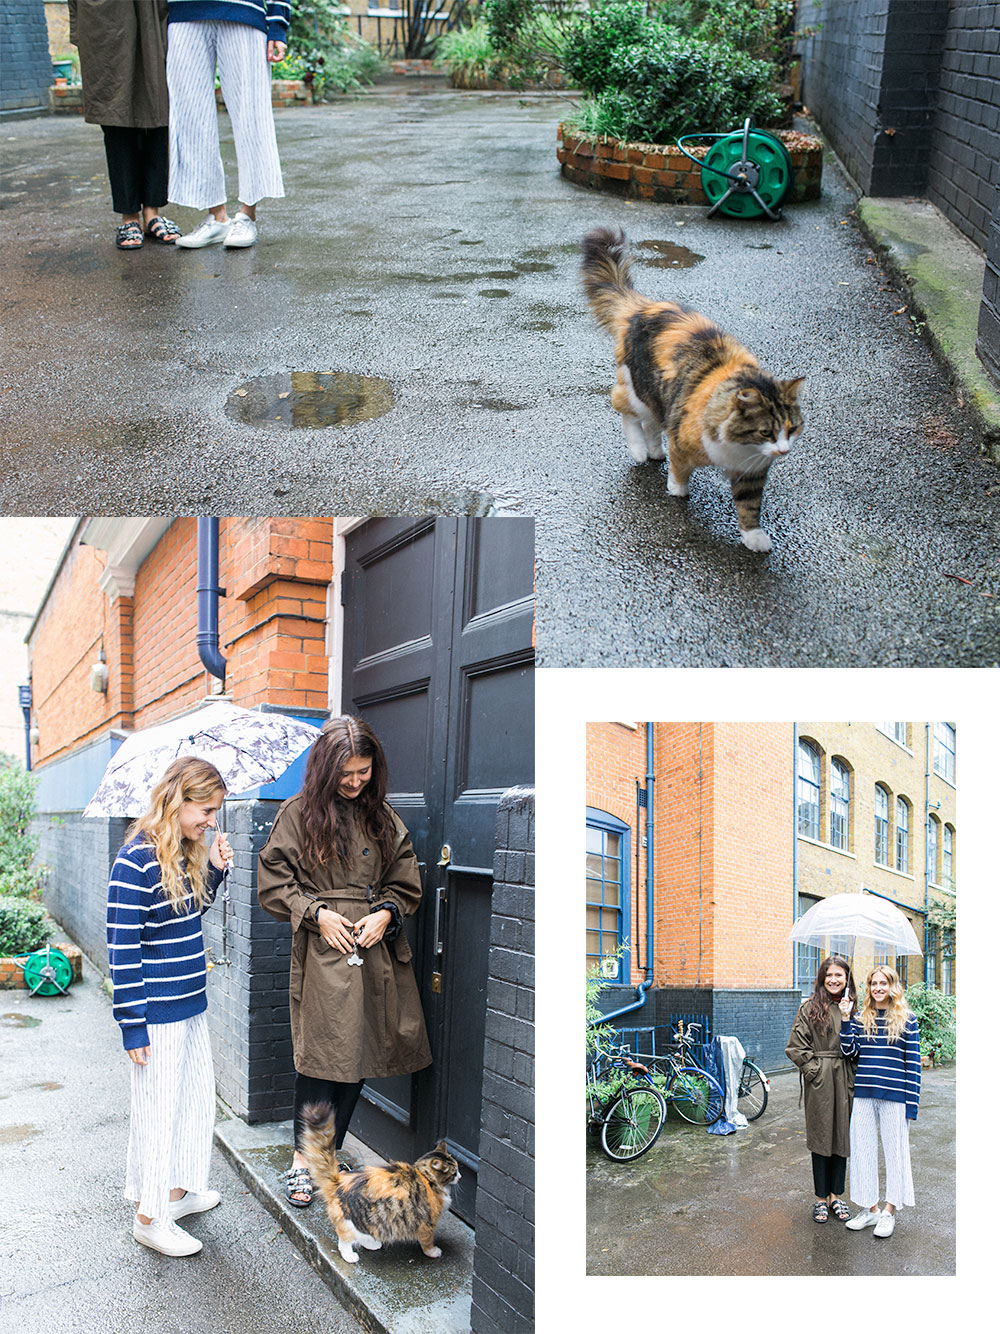 Femtastics-Christie-Rosanna-Wollenberg-London-cat